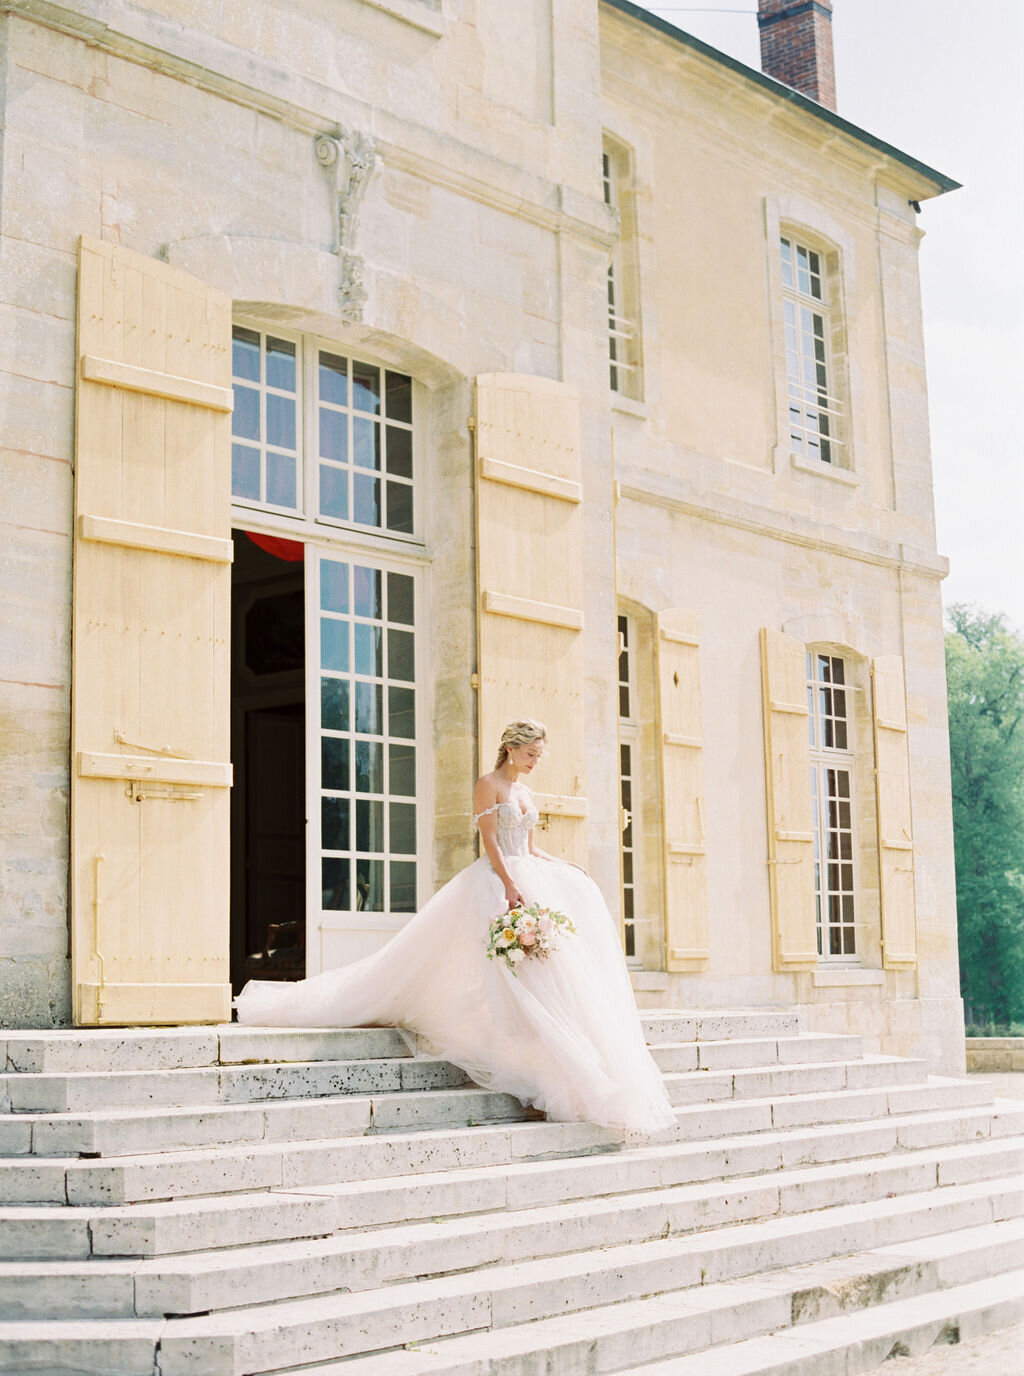 Chateau-de-Villette-wedding-Floraison31